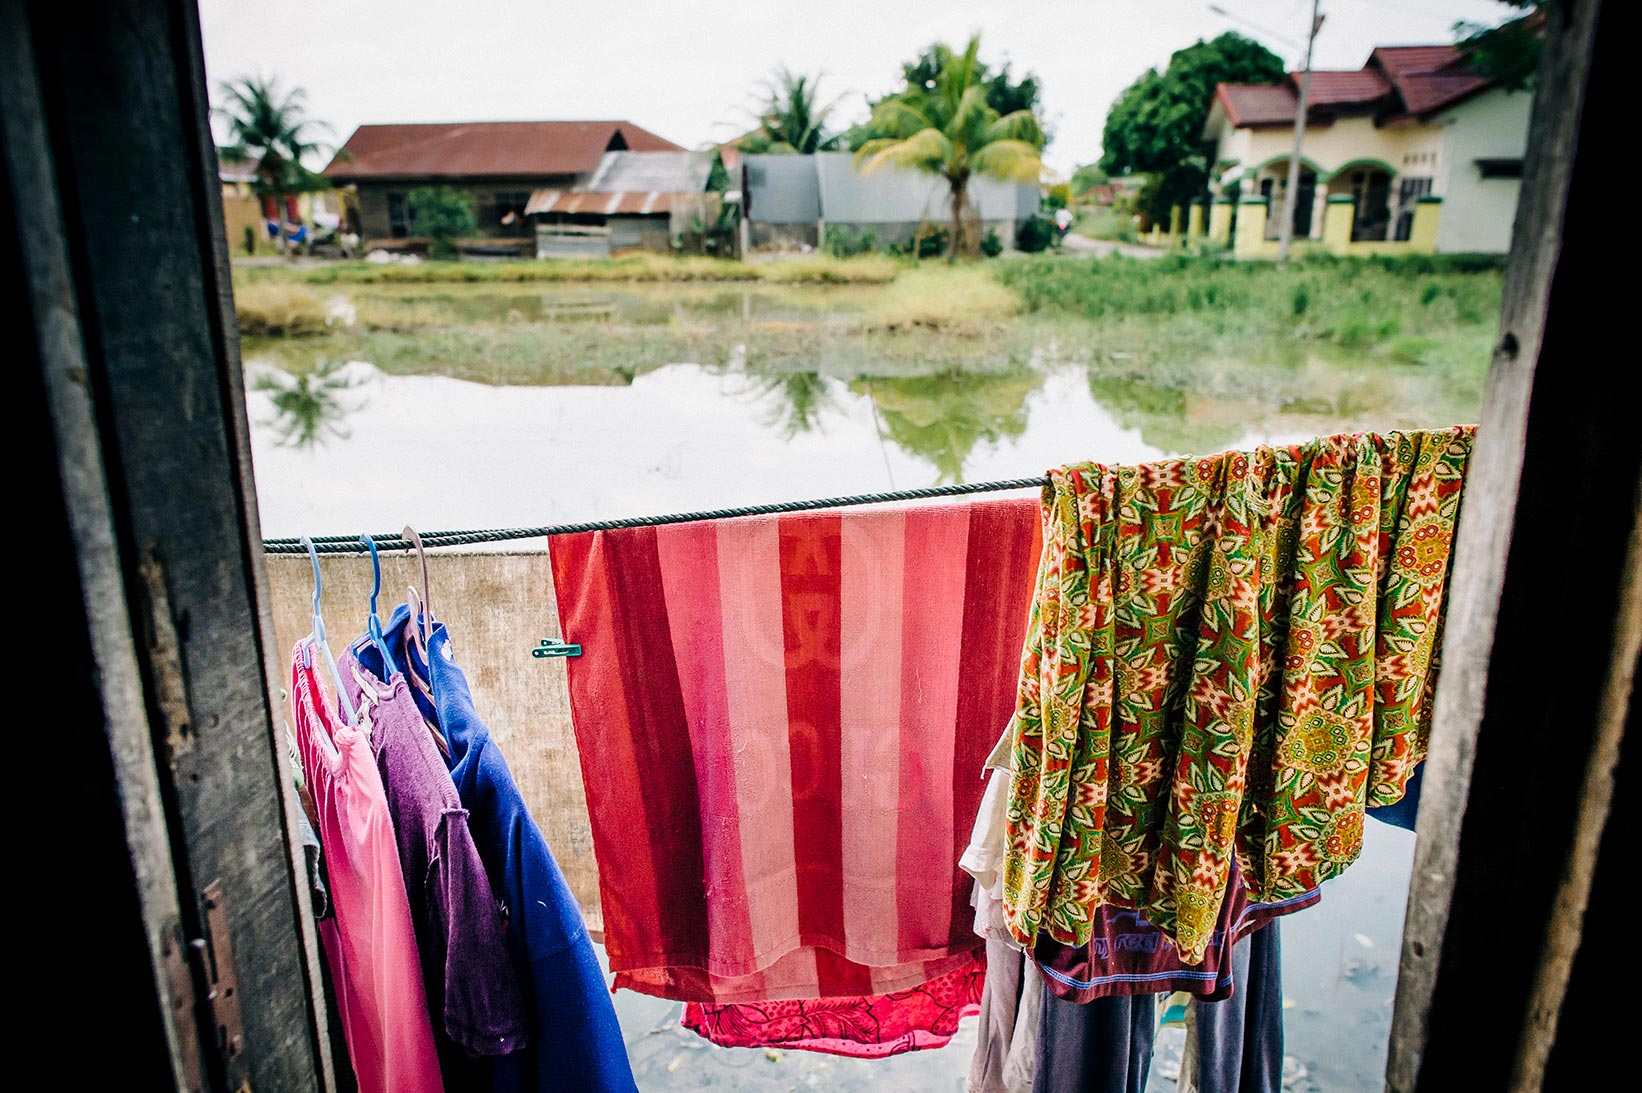 Clothes hang up to dry outside a woman's home in Indonesia.